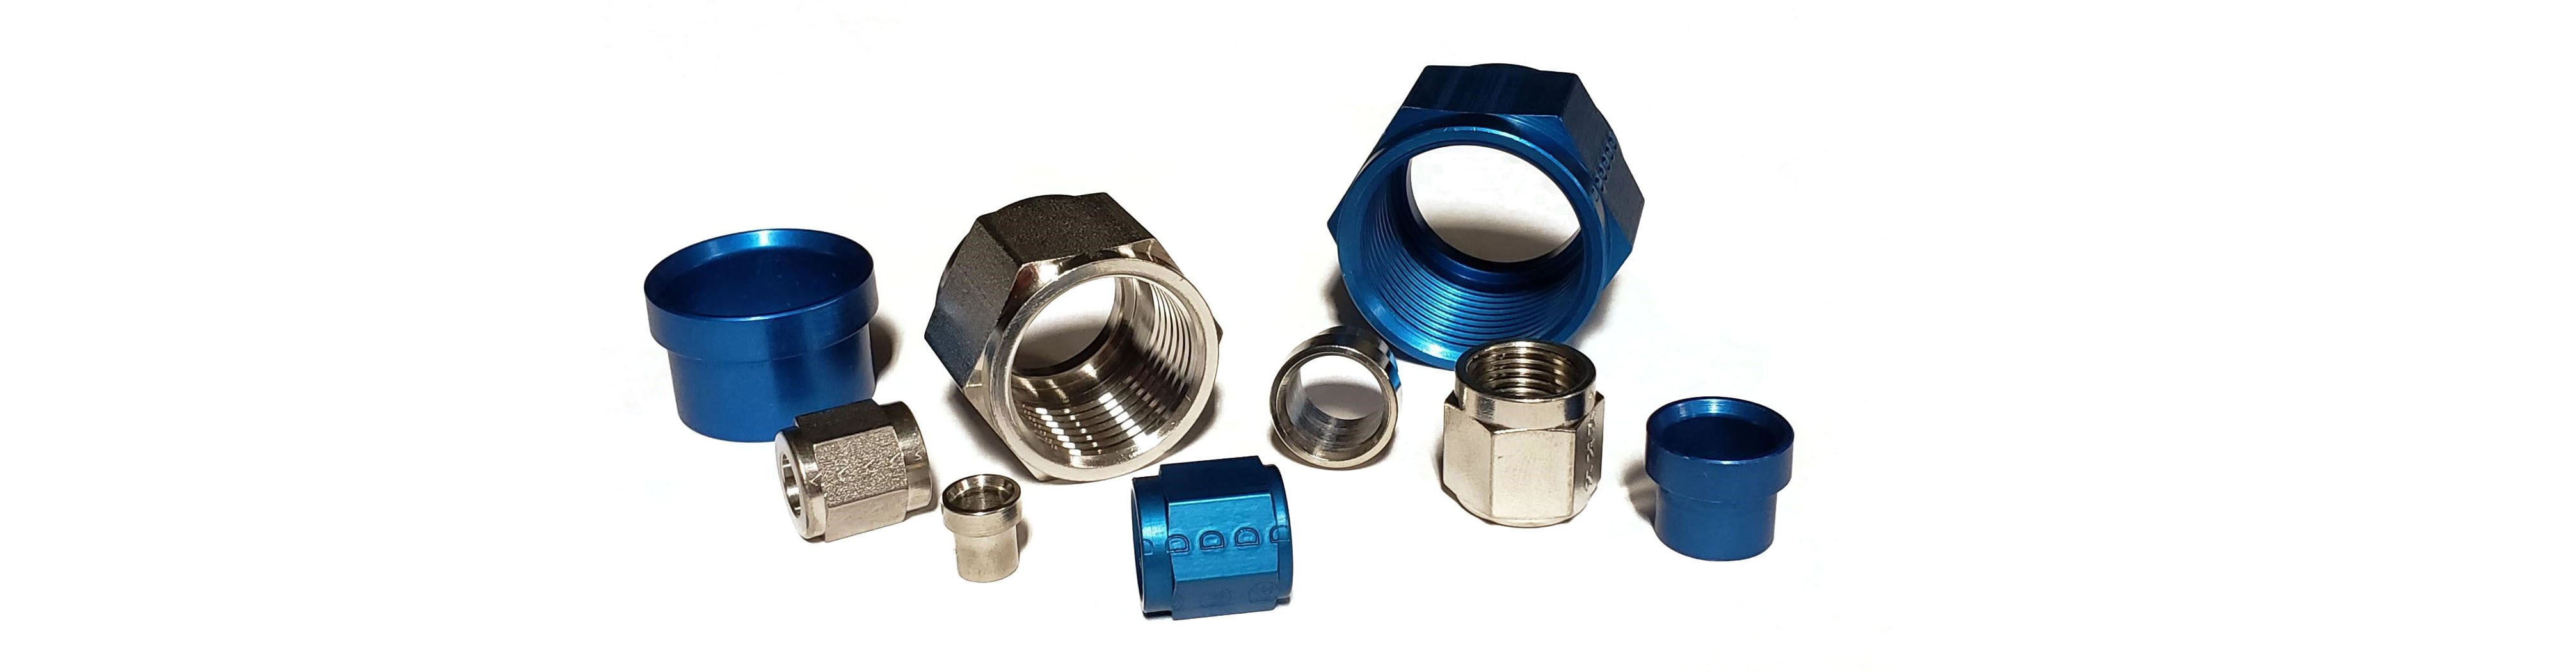 Aerospace Fittings - AN,AS and MS nuts and sleeves for tube assembly